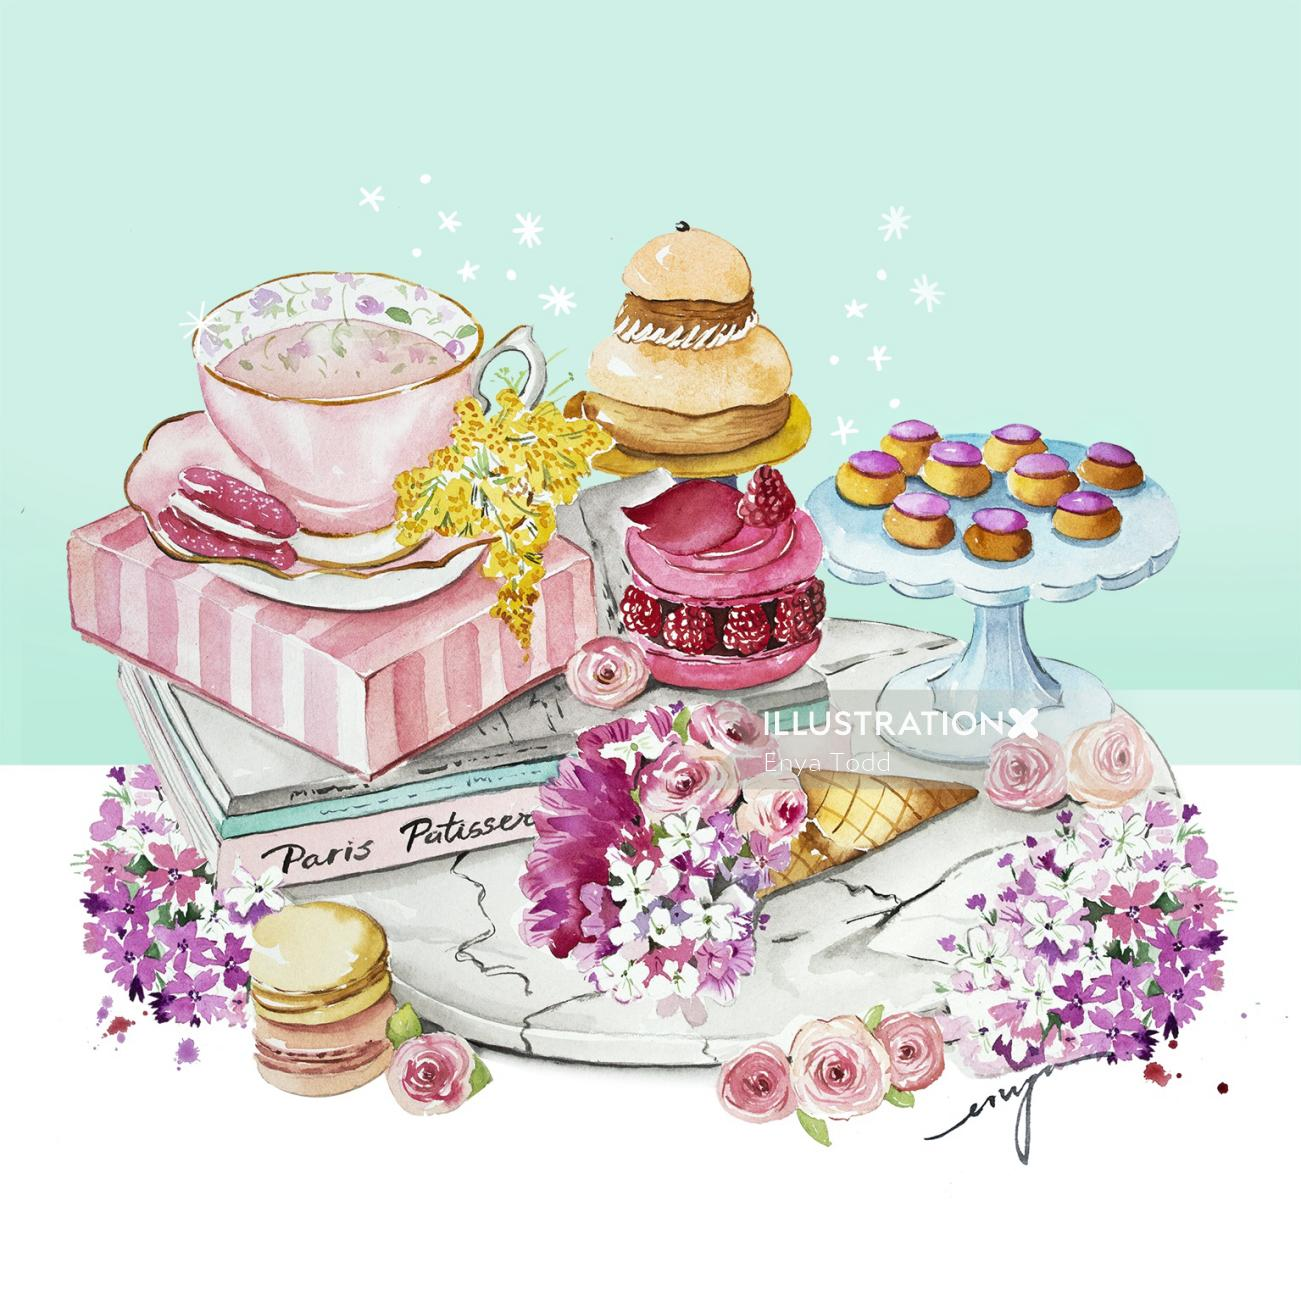 Illustration of Patisserie Table